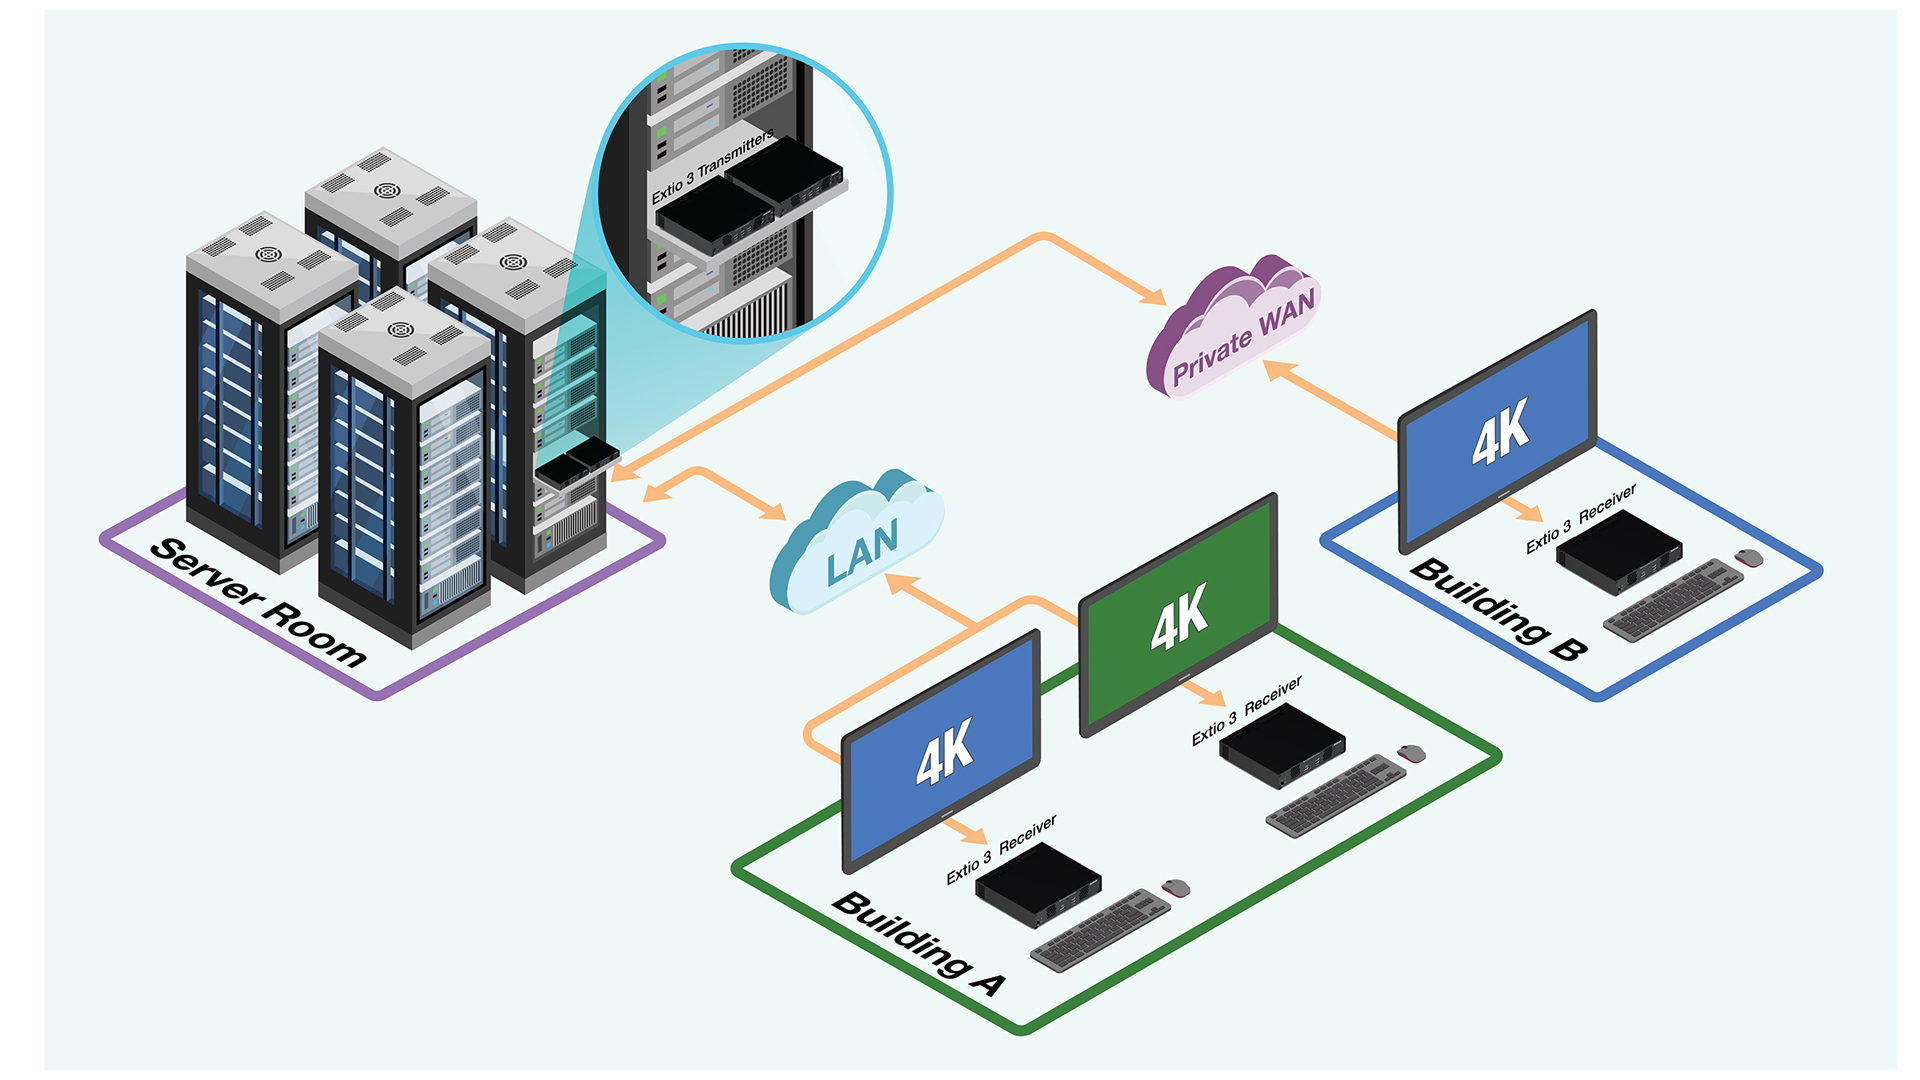 Matrox Extio 3 private LAN network